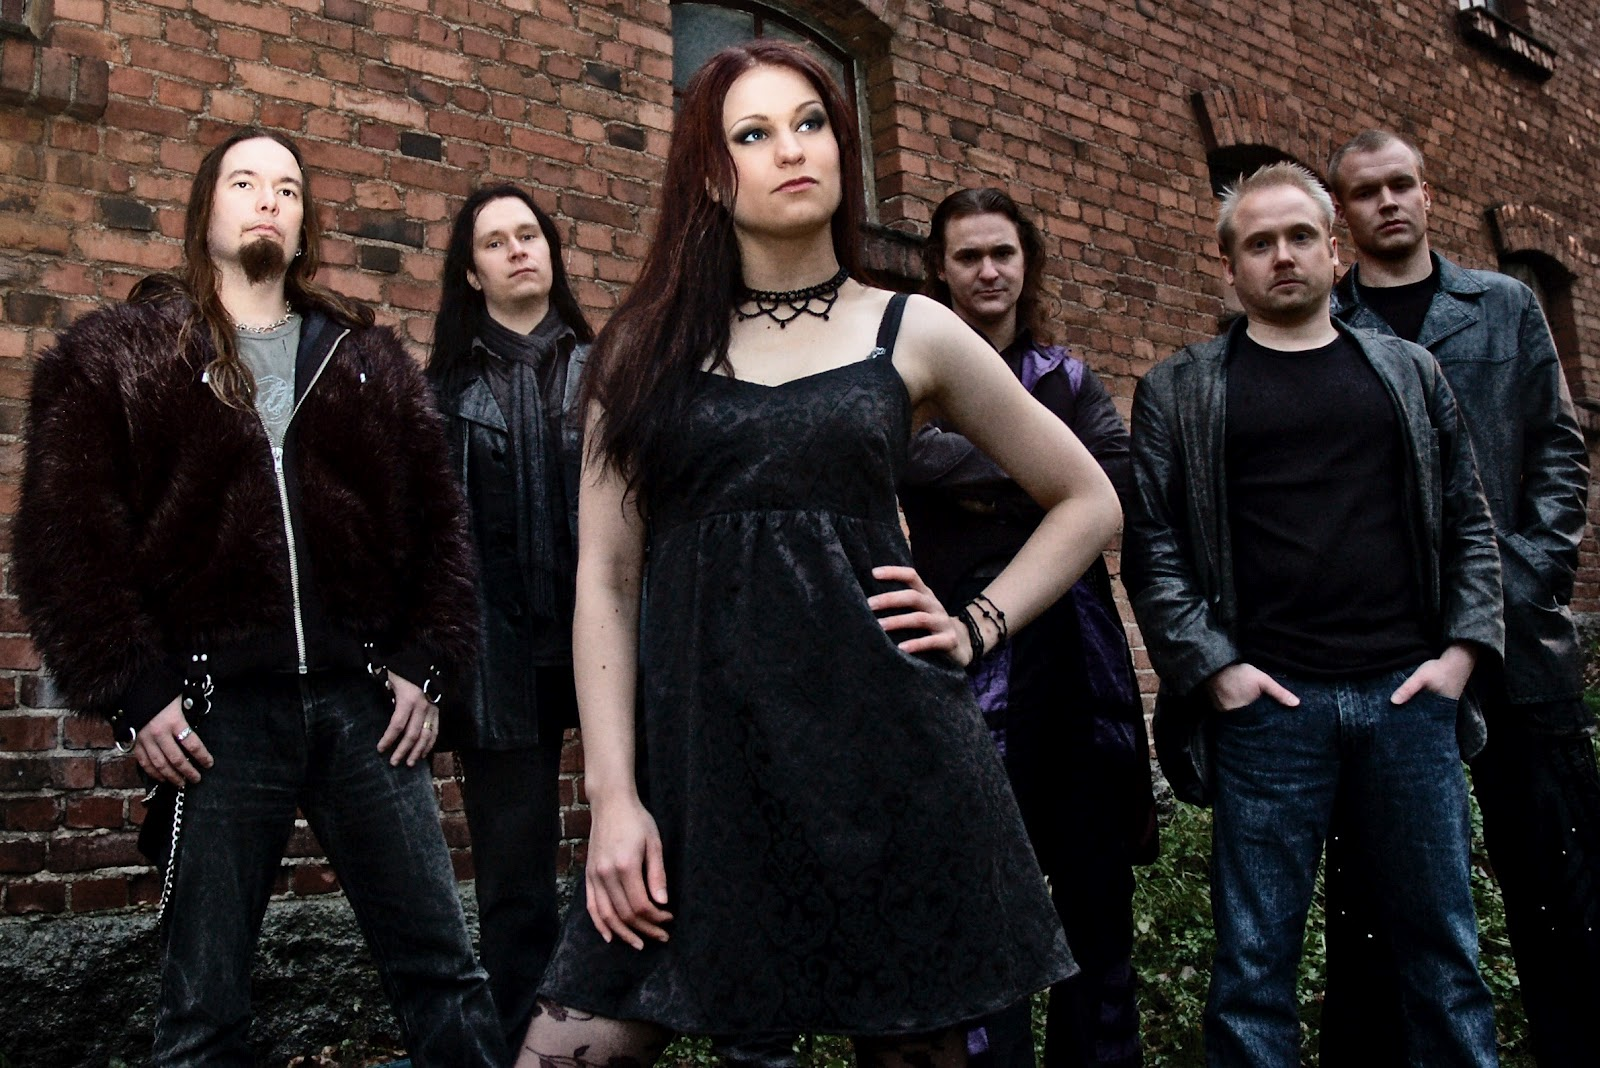 Sirens of Darkness: List of Female Metal Bands - Part 8